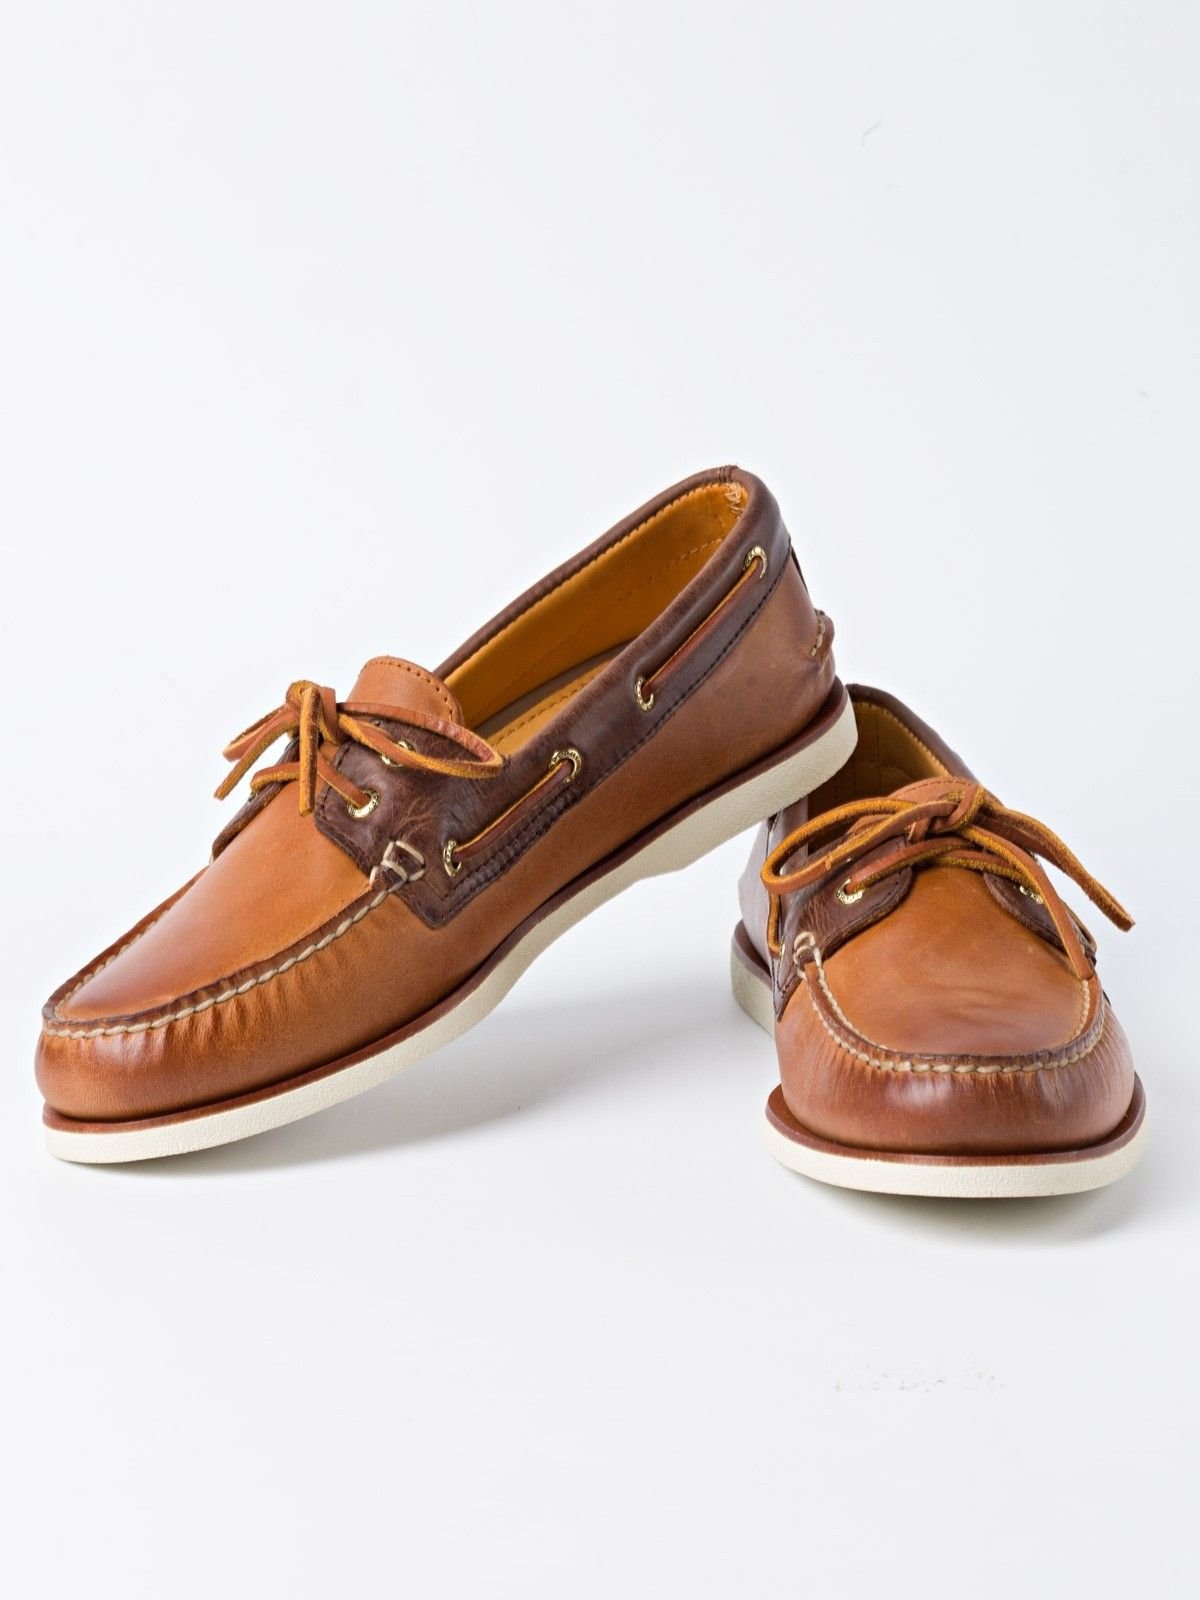 Sperry Gold Cup Boat Shoe - Part of the